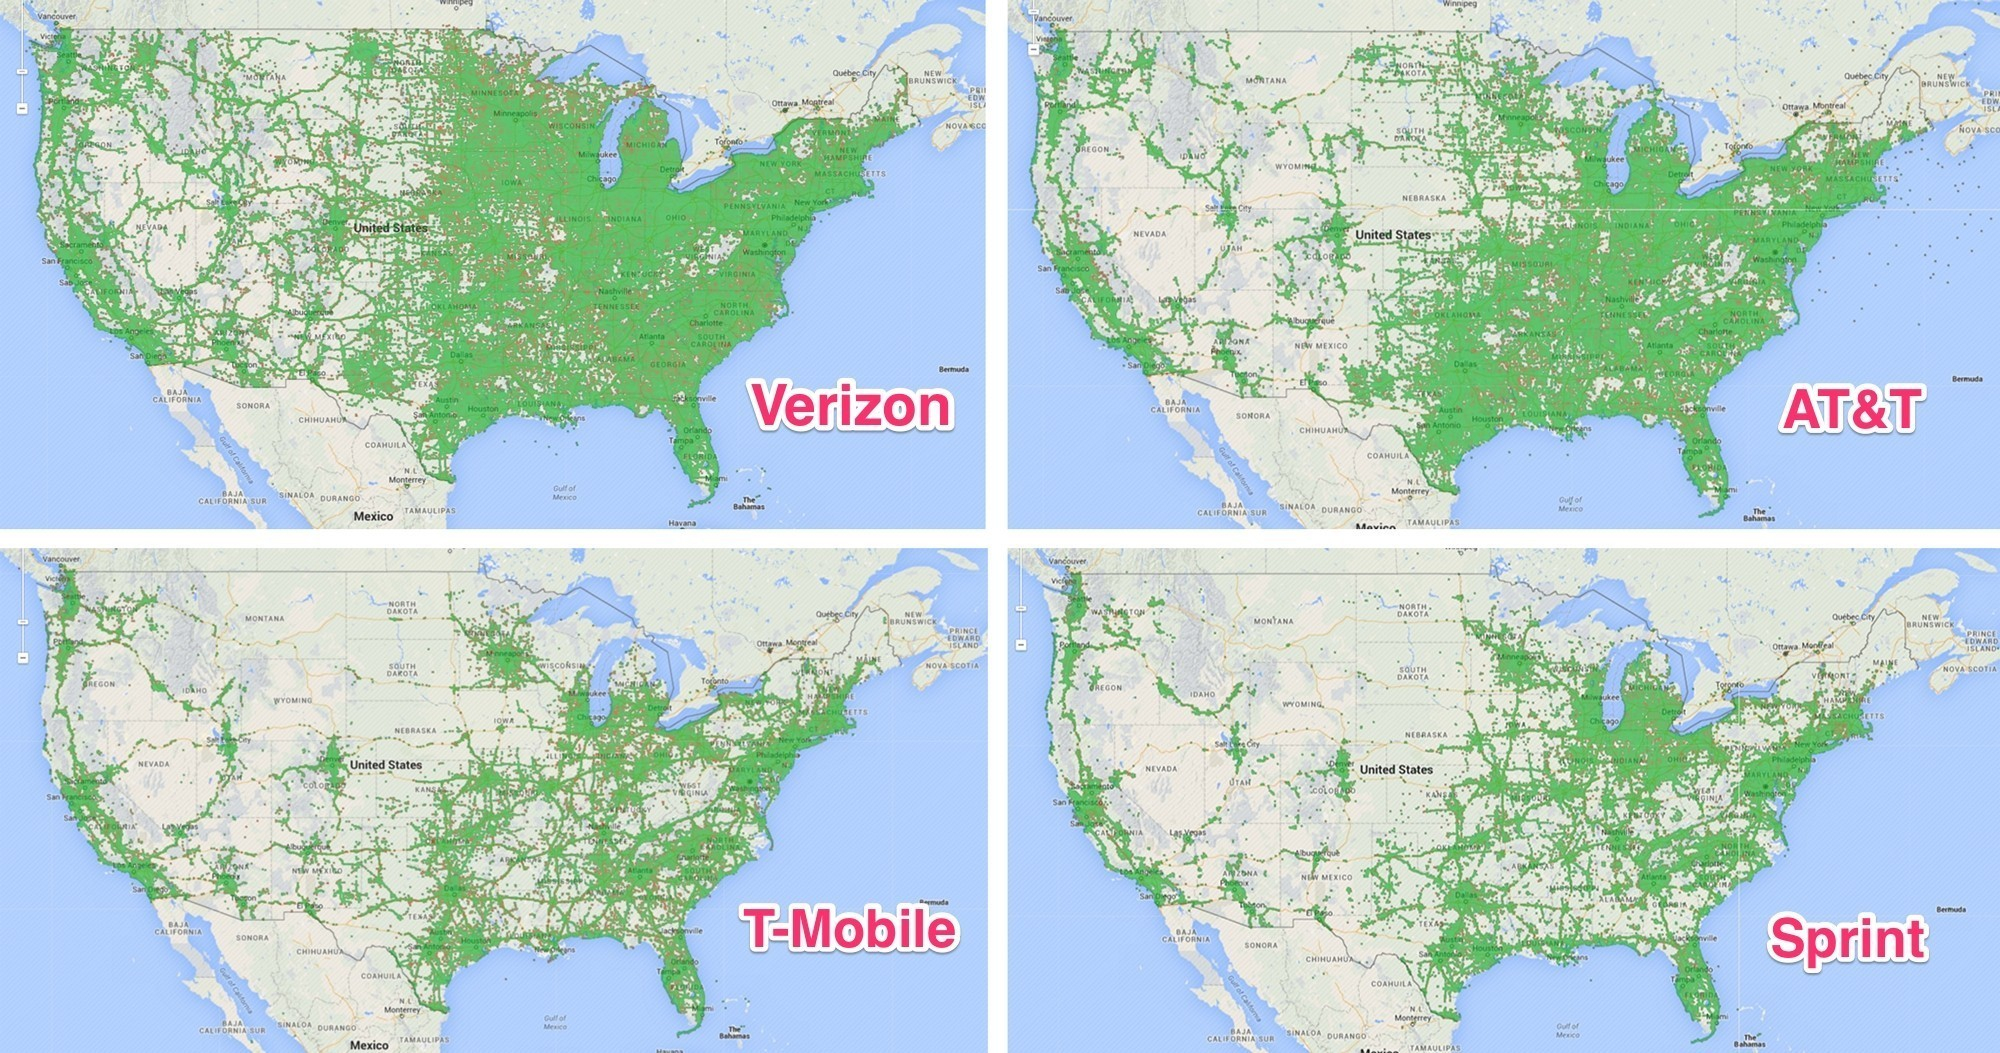 Us Cellular 4G Coverage Map Att National Coverage New Sprint 4G - At&t Coverage Map In California